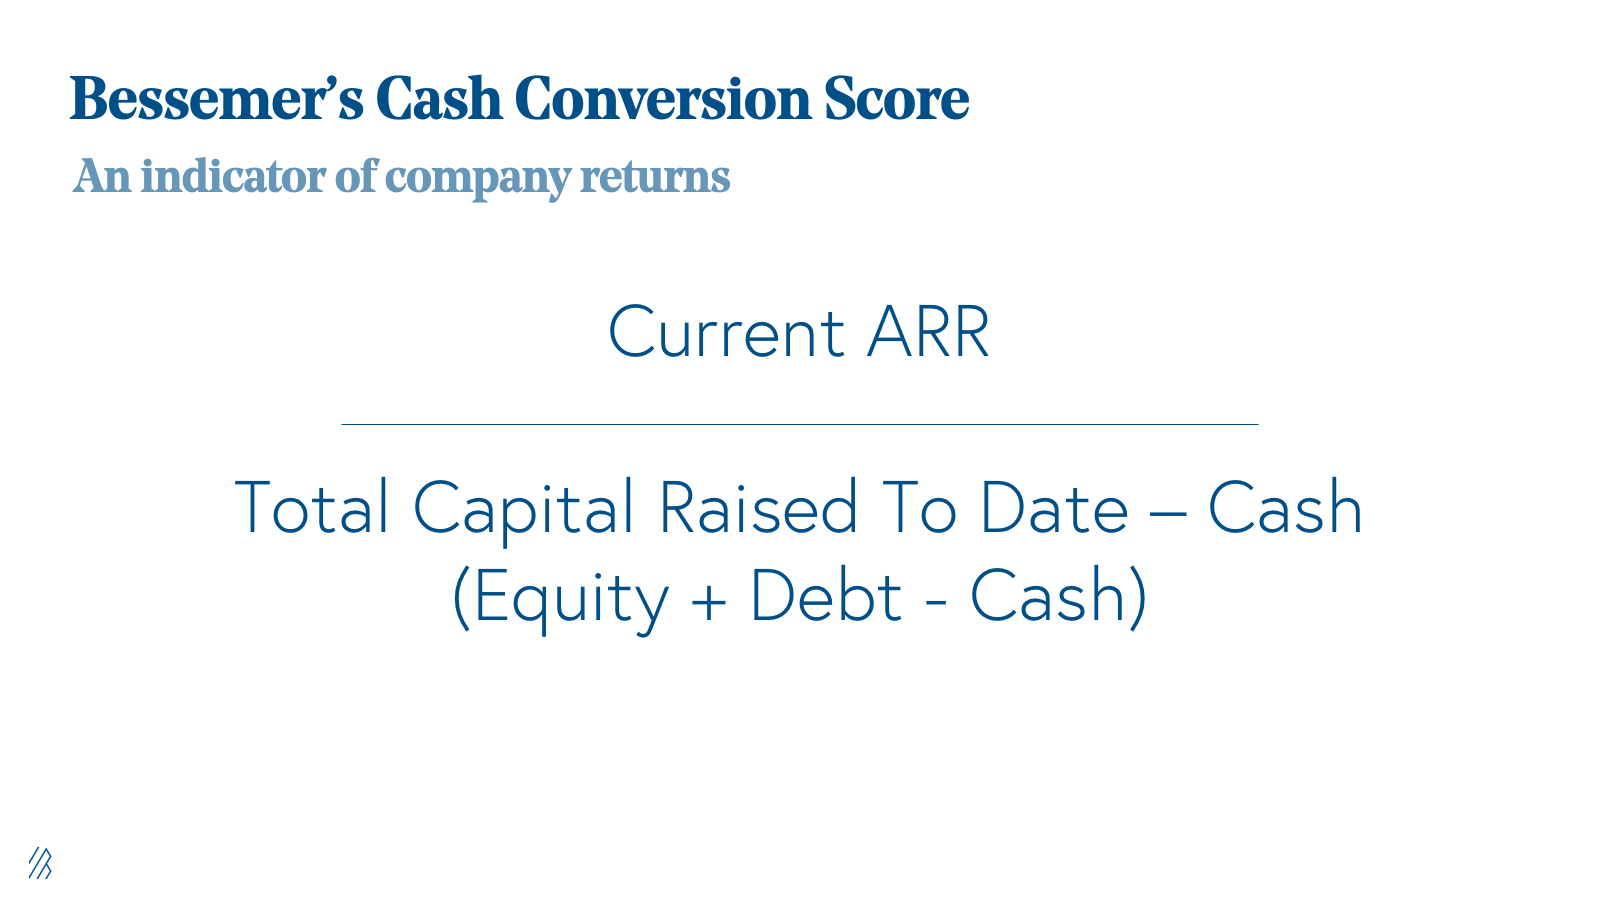 Cash Conversion Score Equation